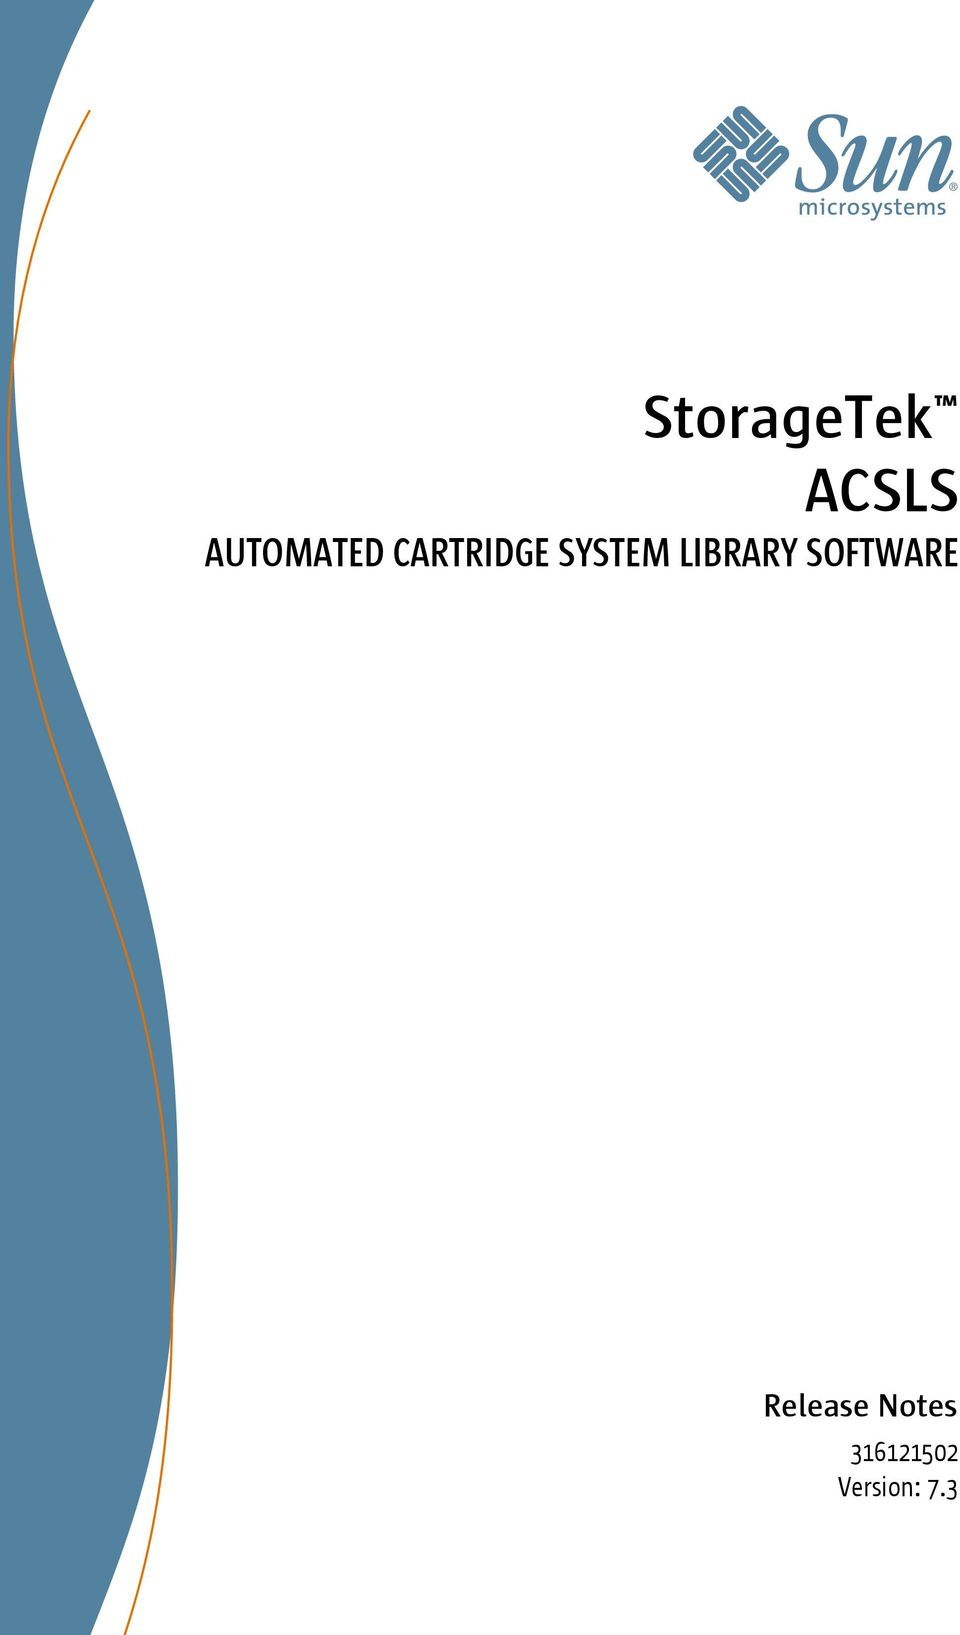 SYSTEM LIBRARY SOFTWARE